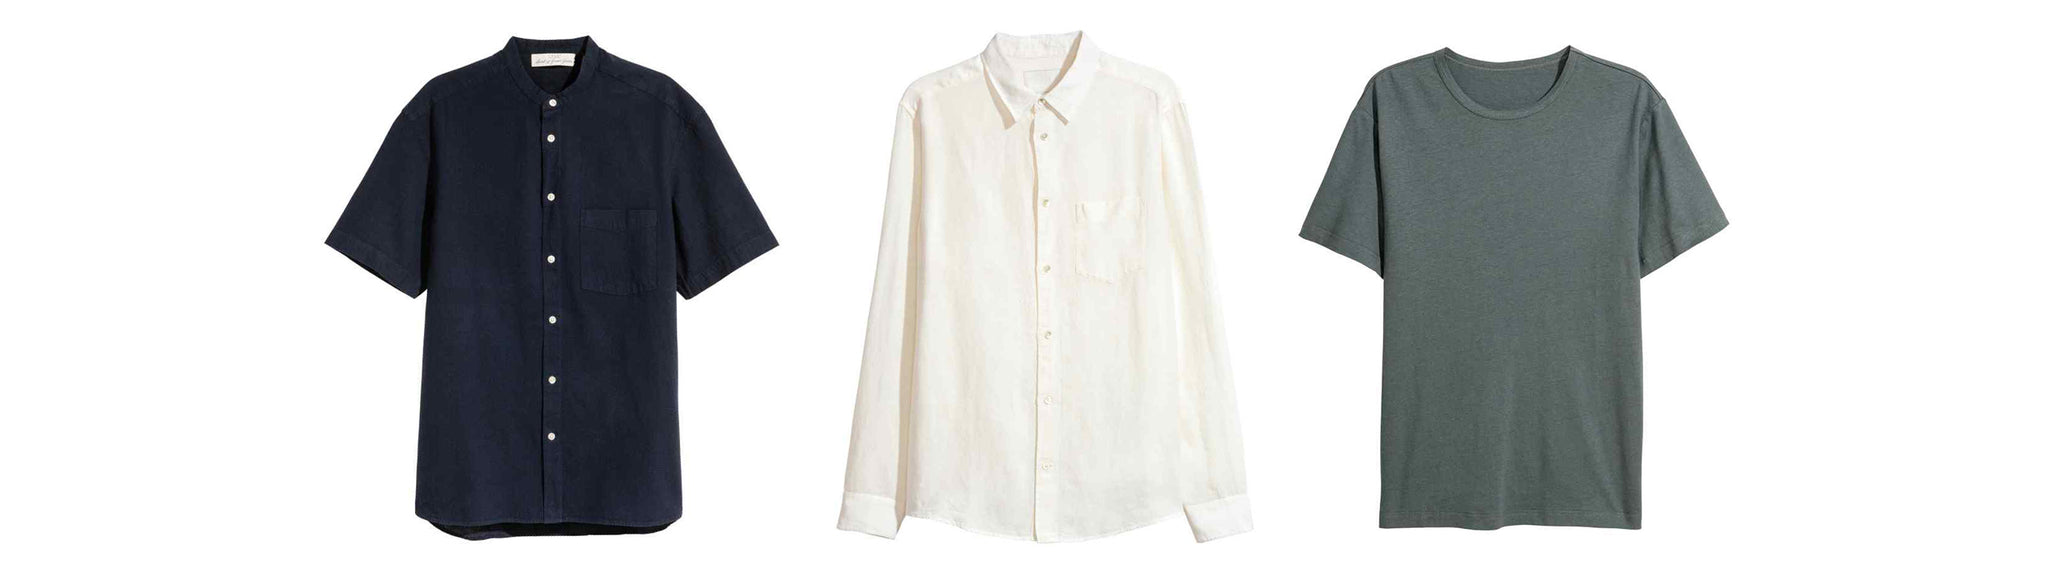 Linen Shirts to wear with your men's bathing suits this summer